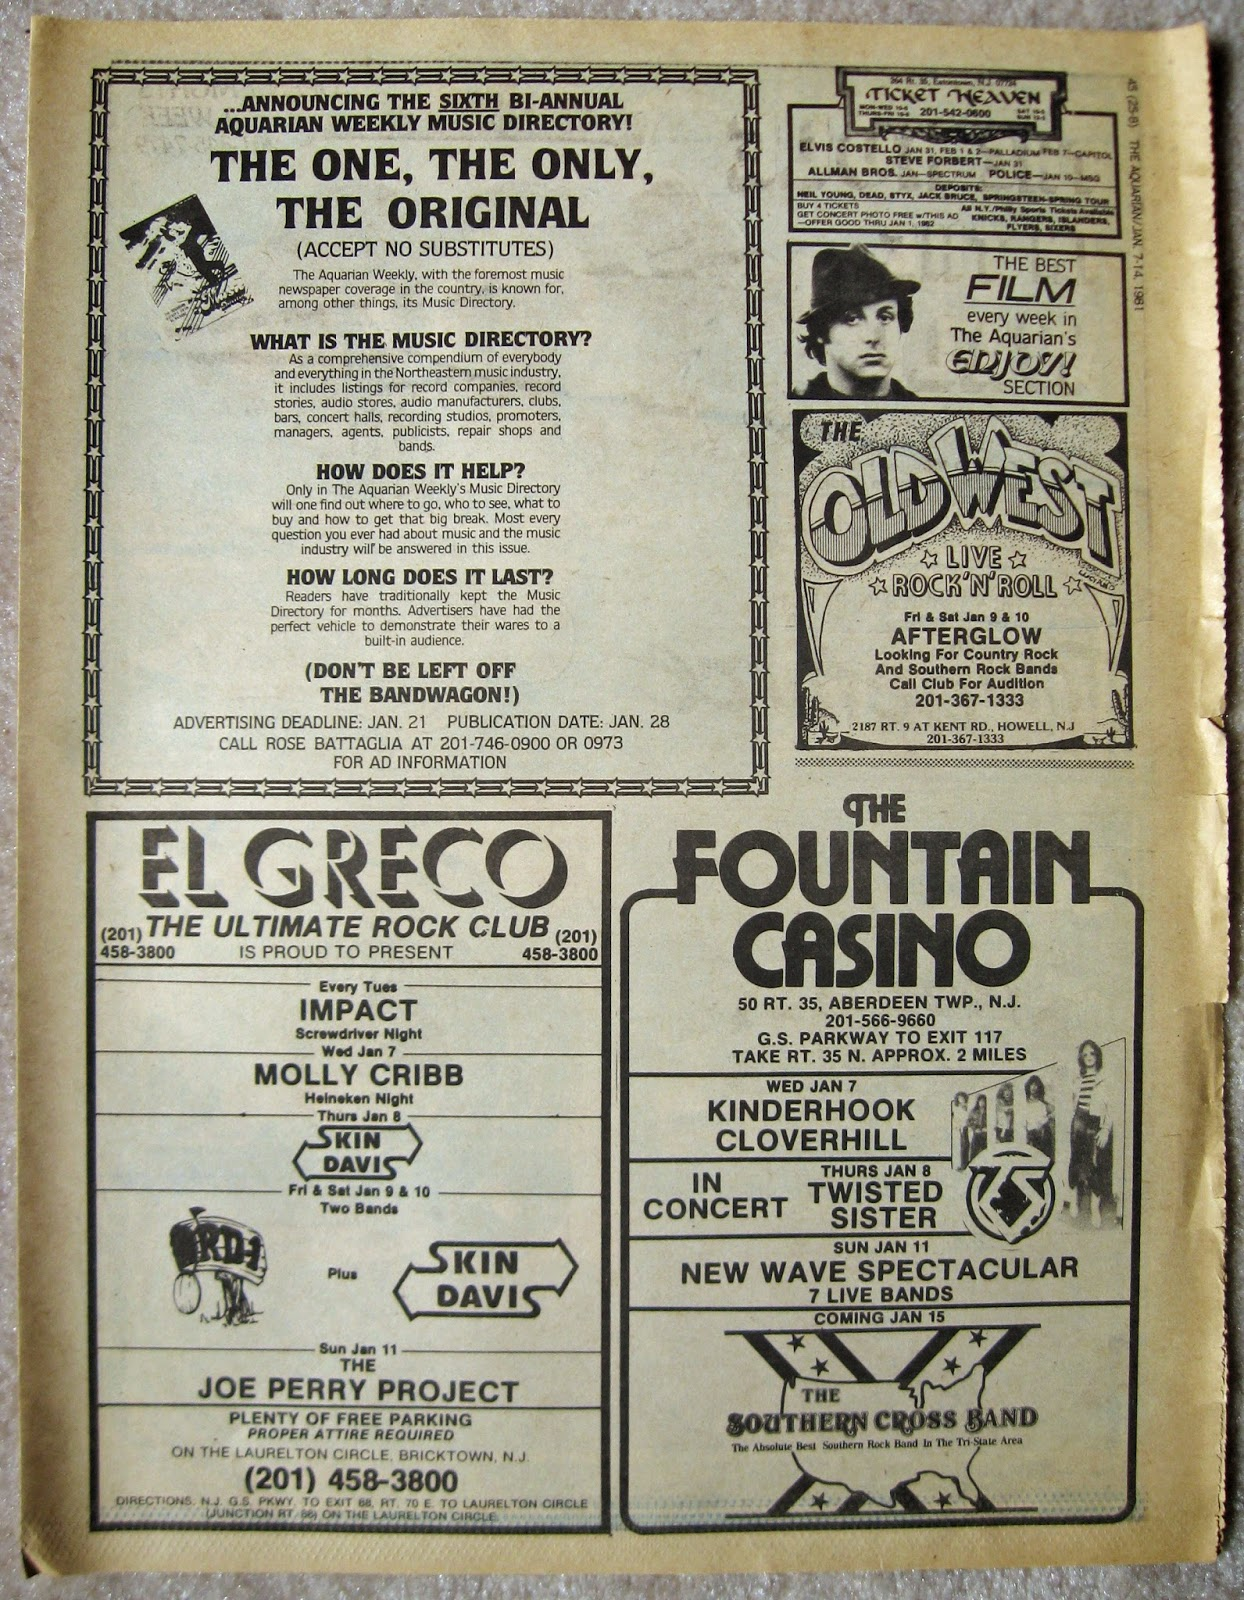 Fountain Casino - El Greco - The Old West band line ups 1981